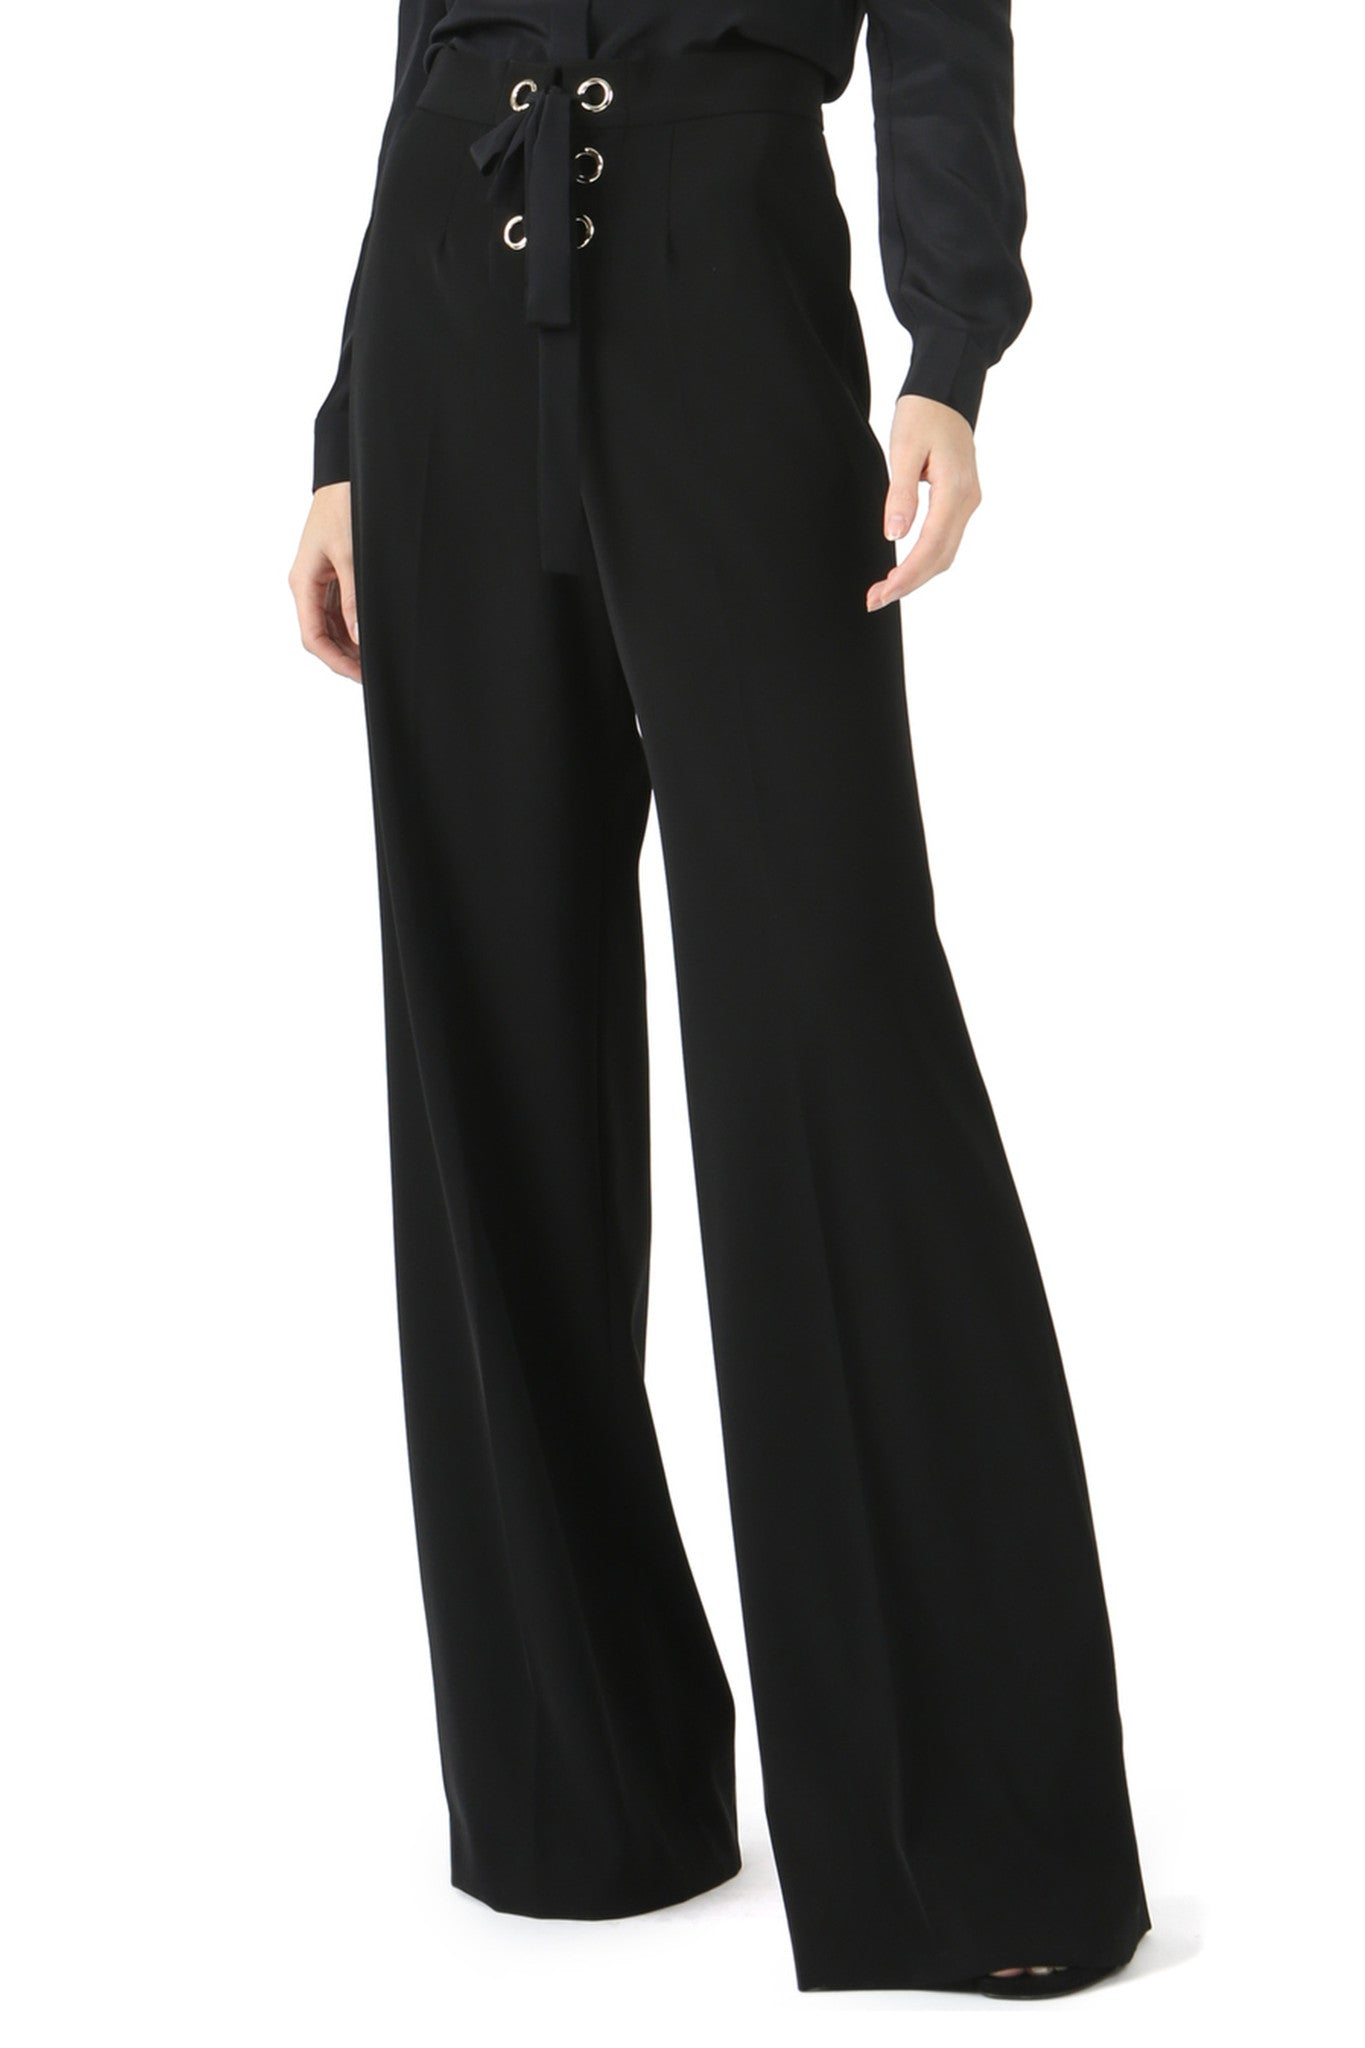 Jay Godfrey Black Lace-Up Wide Leg Pants - Front View